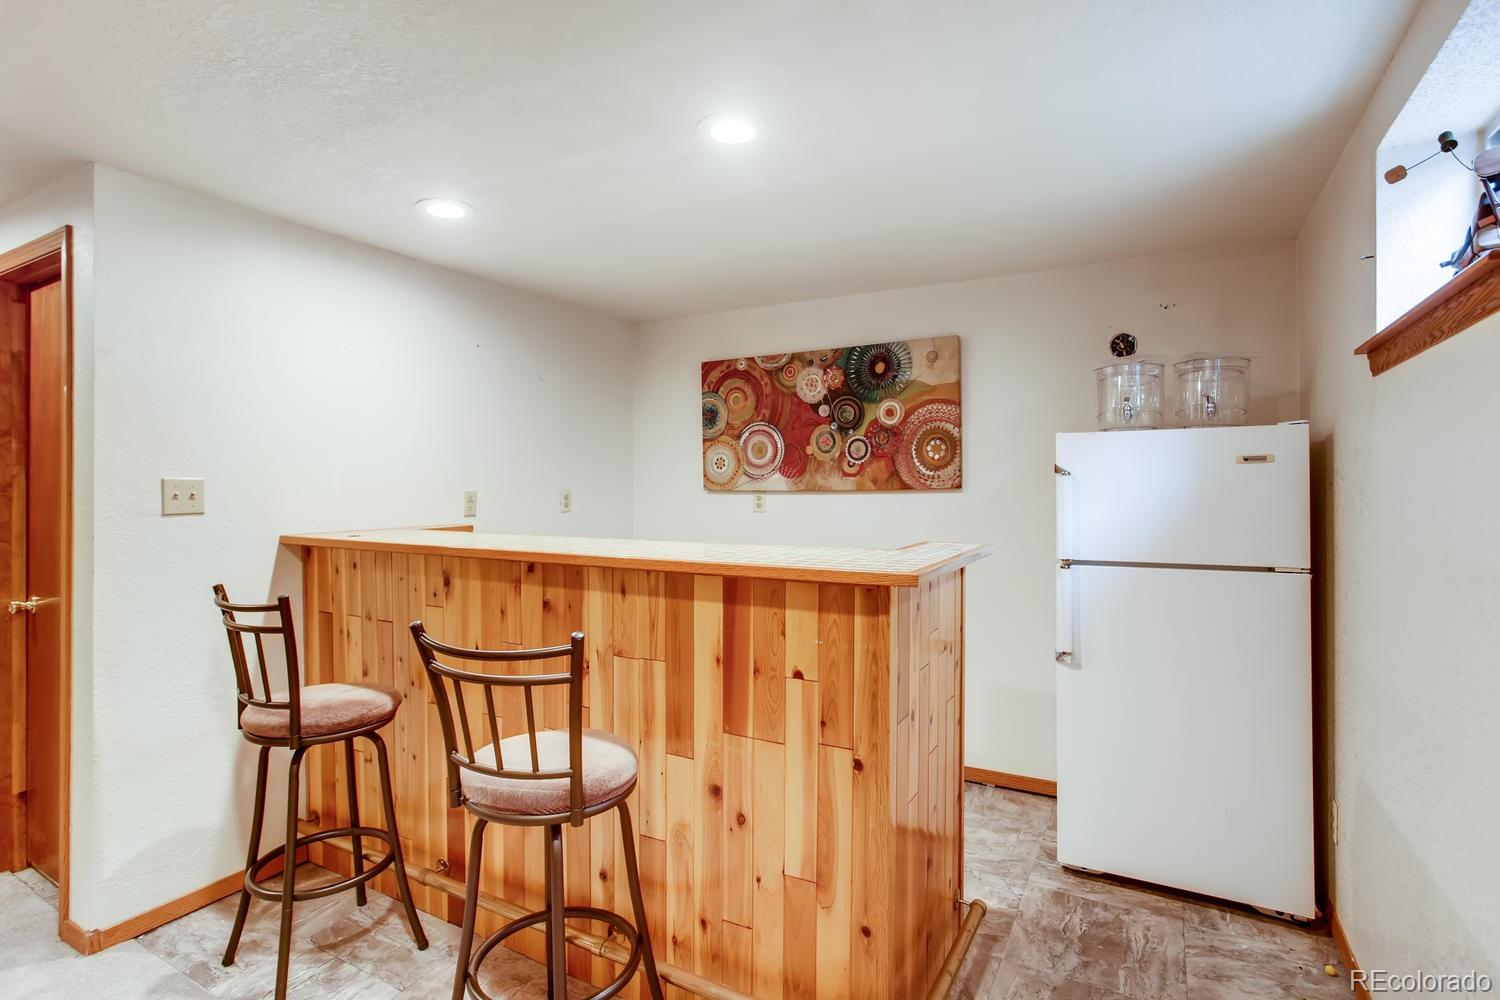 MLS# 4853831 - 19 - 13905 W 6th Place, Golden, CO 80401